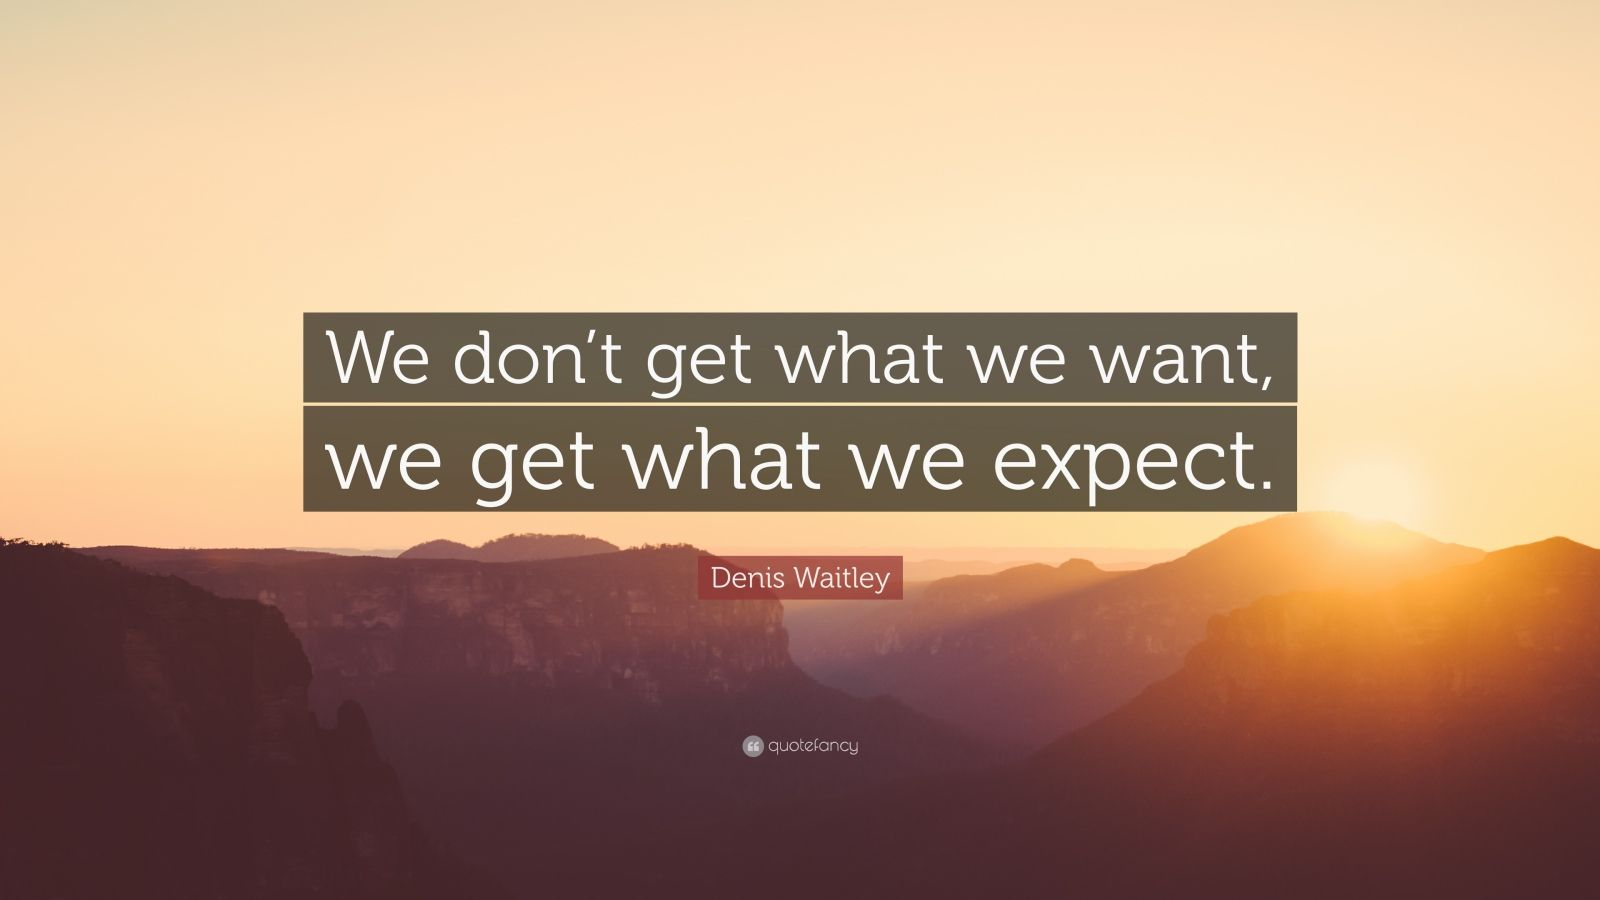 """Denis Waitley Quote: """"We don't get what we want, we get what we expect."""""""